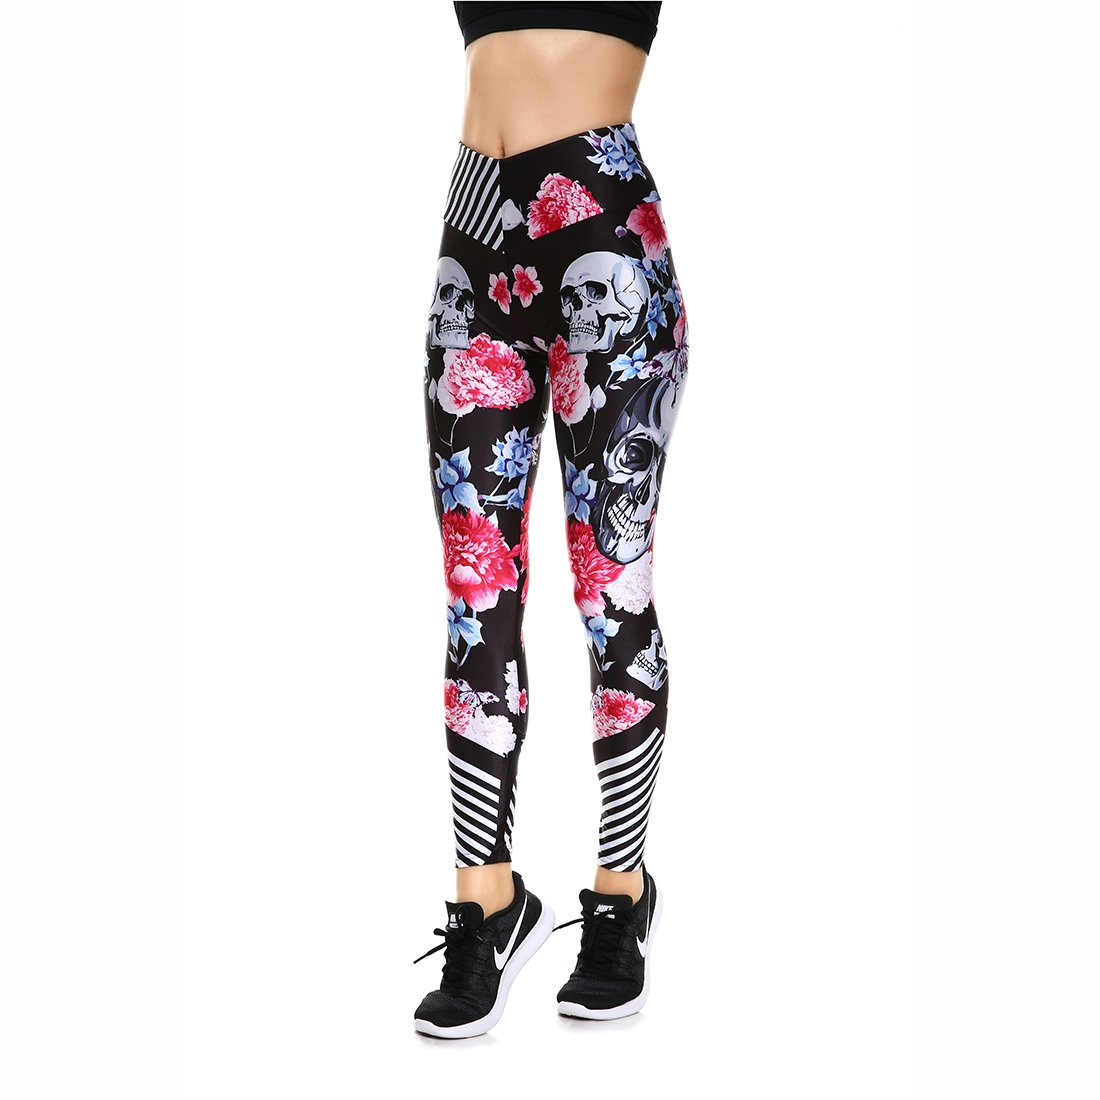 Lesubuy V Wide Waistband Full Length High Waisted Compression Gym Athletic Exercise Leggings Workout for Women XS-XL